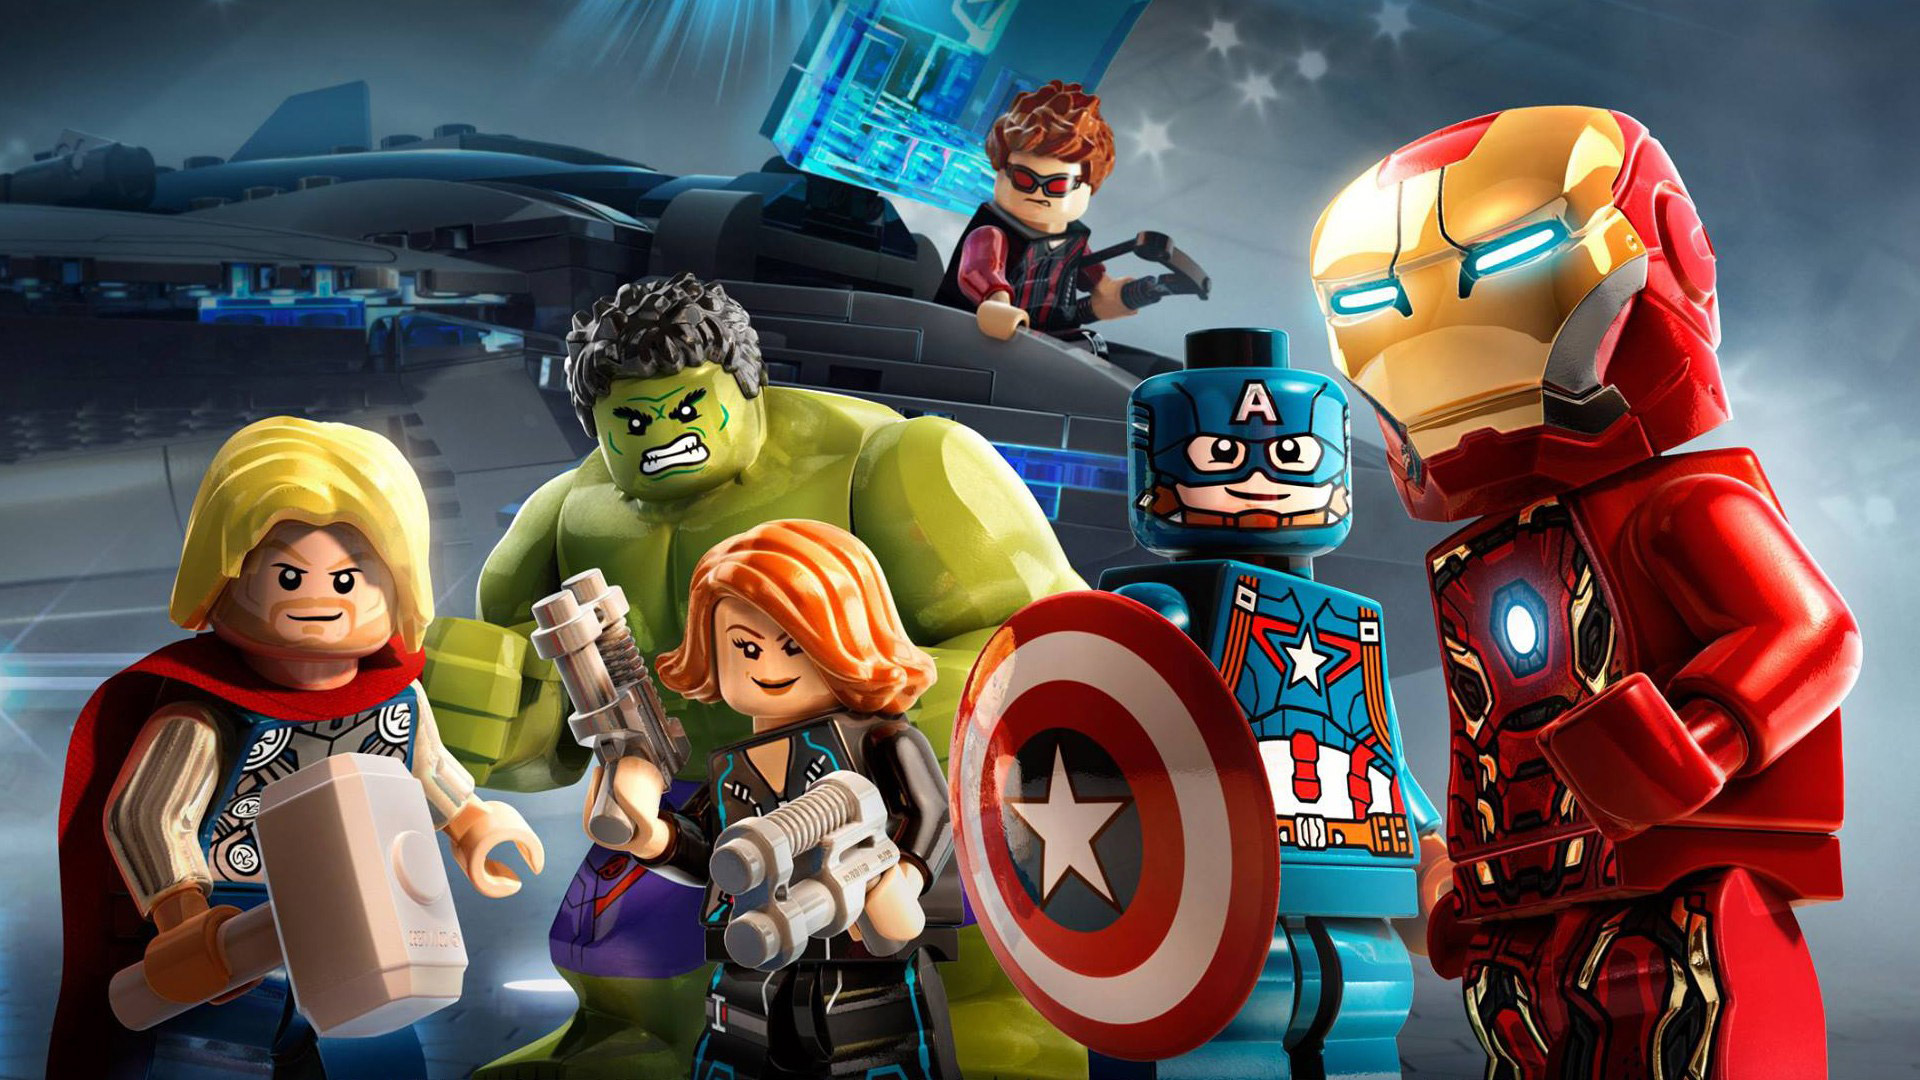 lego marvel wallpaper for desktop - photo #10